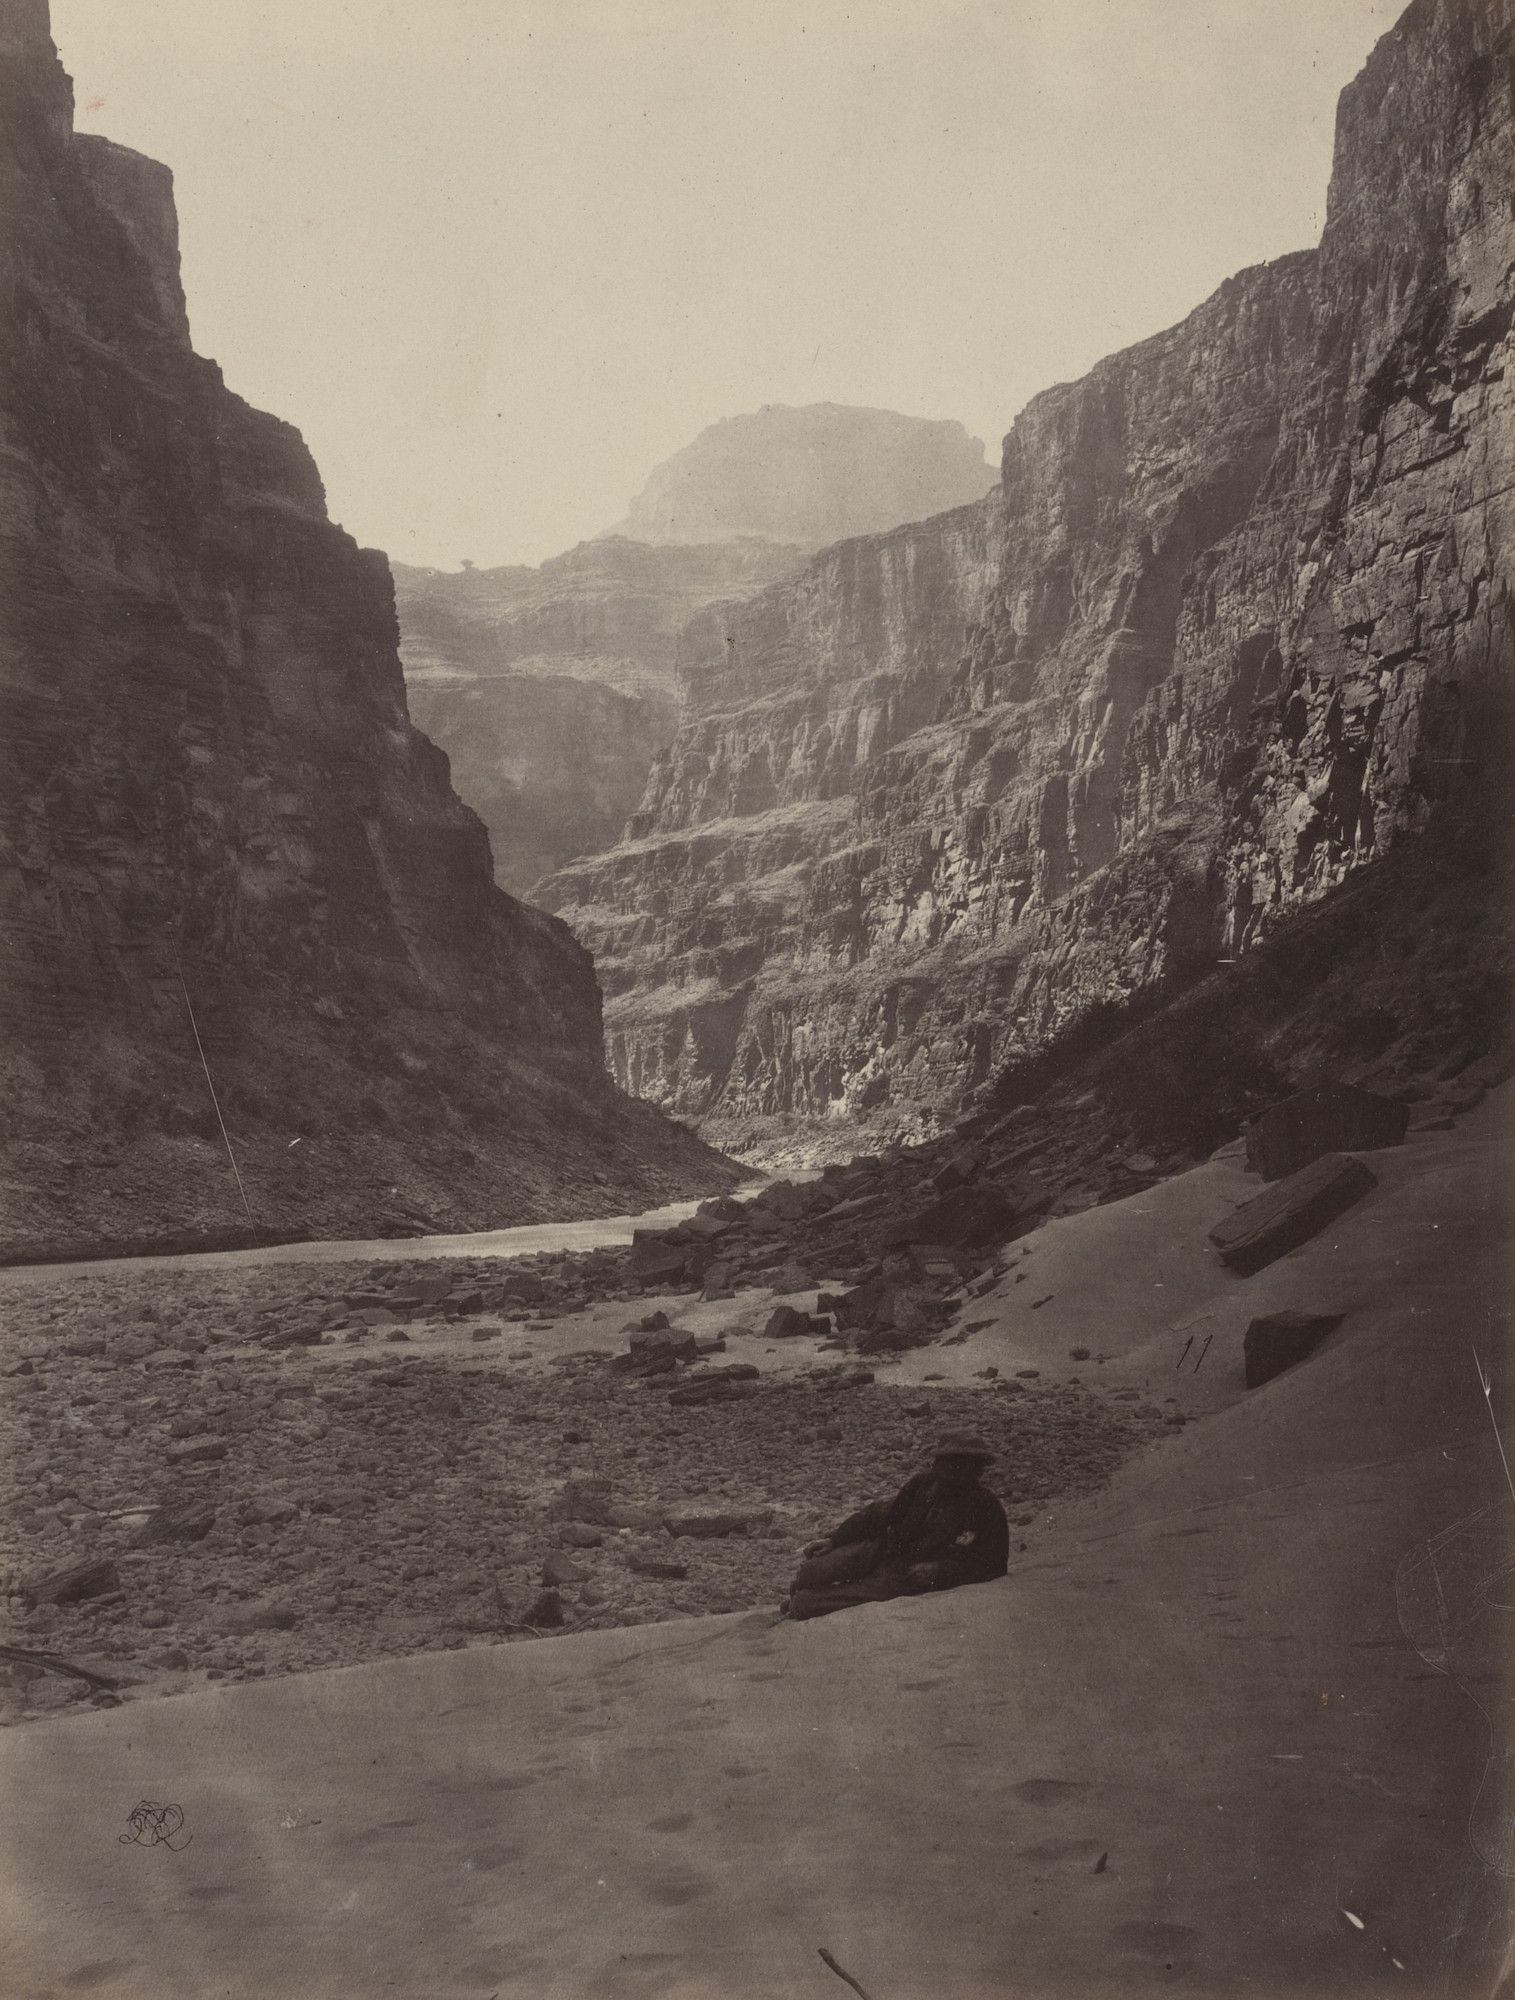 Timothy O'Sullivan, William H. Bell. Grand Canyon of the Colorado River, Mouth of Kanab Wash, Looking West. Seasons of 1871, 1872 and 1873